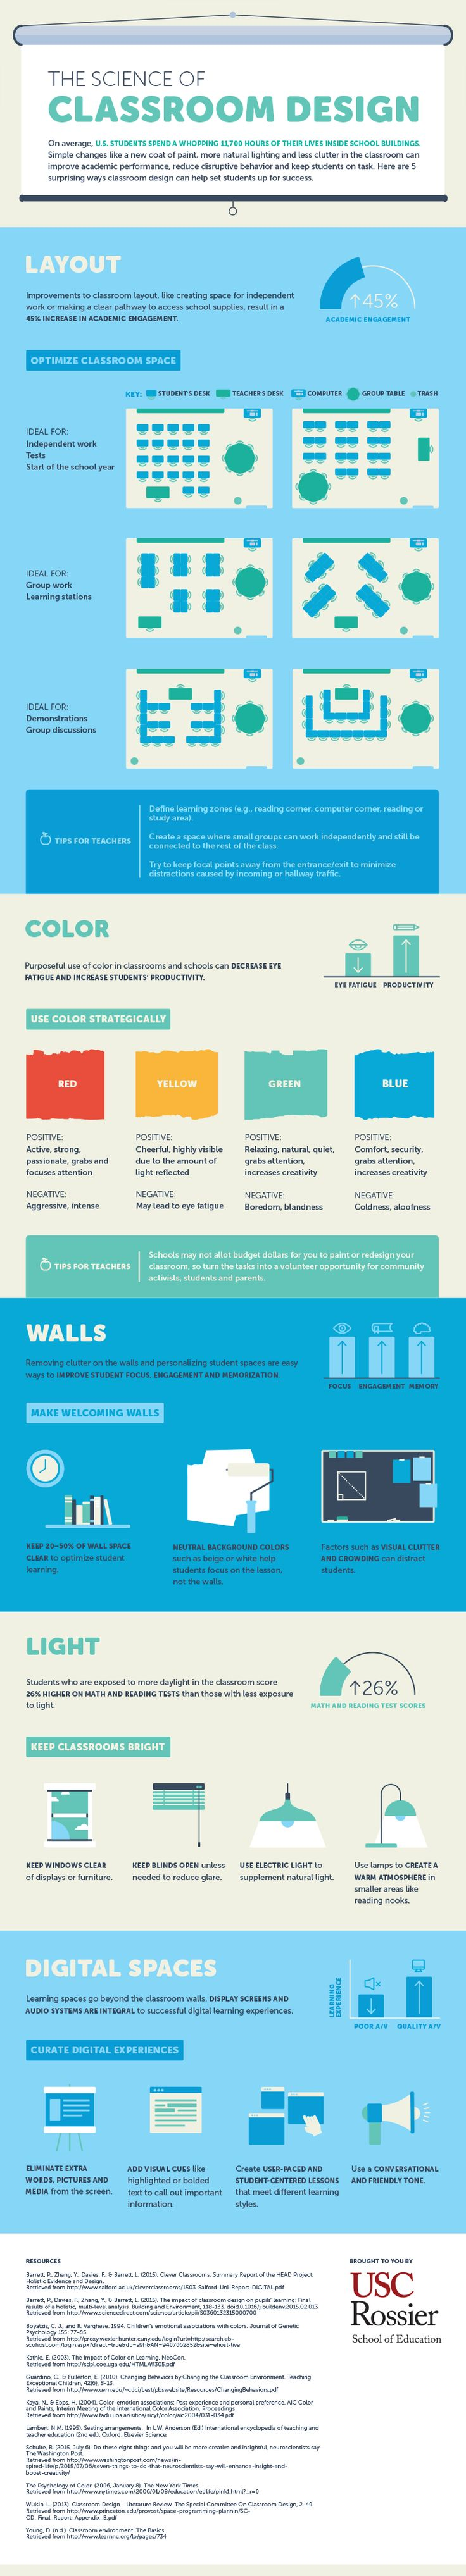 The Science of Classroom Design #Infographic #Education